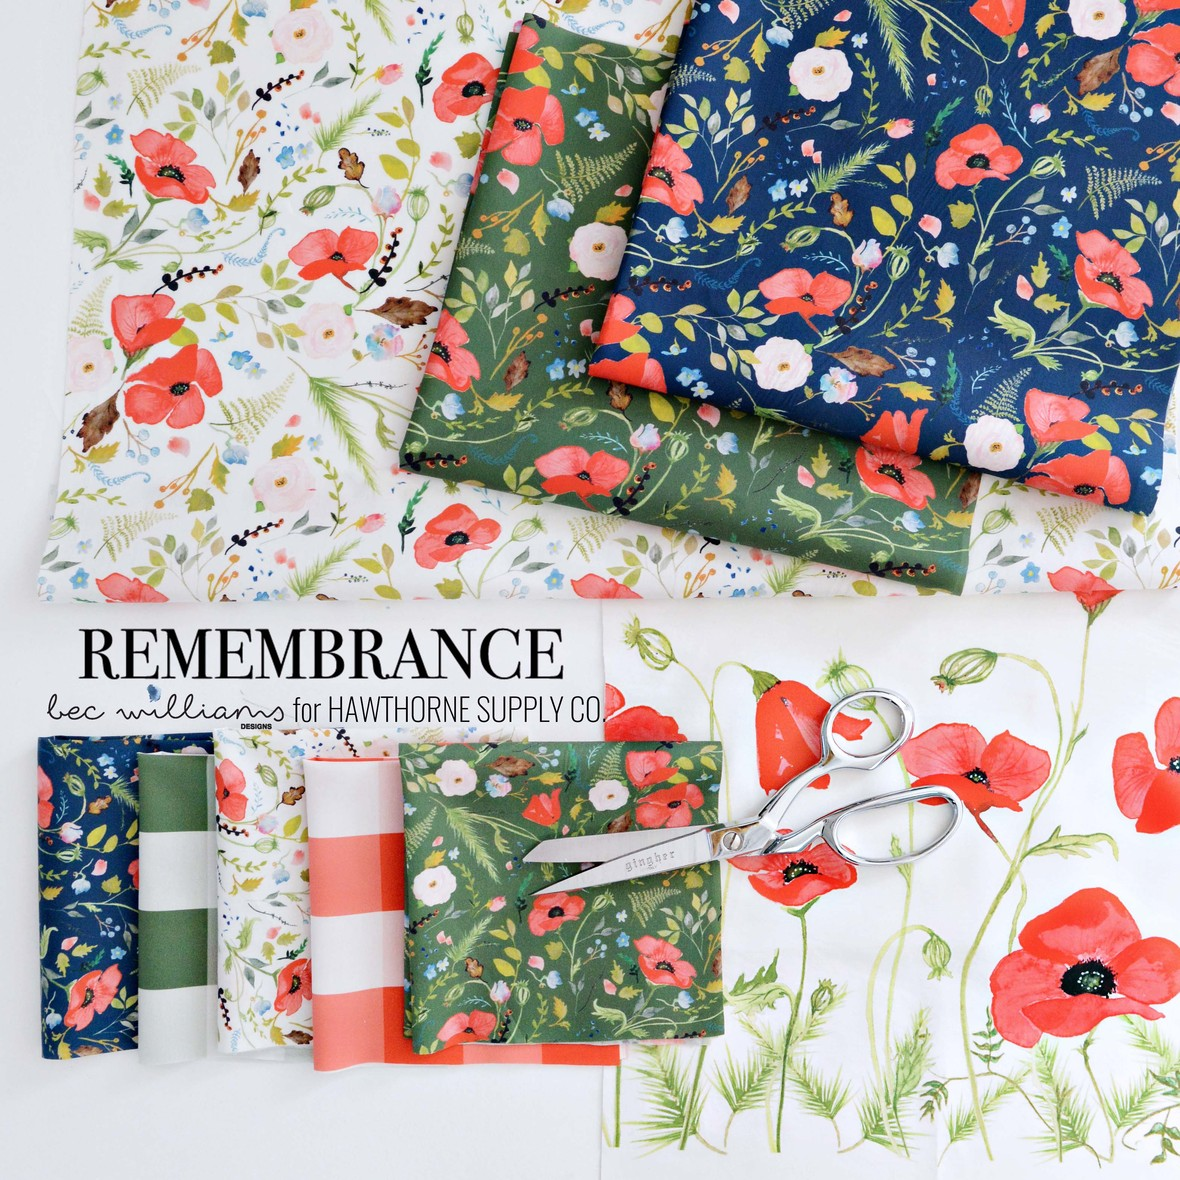 Remembrance Fabric Poster Bec Williams for Hawthorne Supply Co